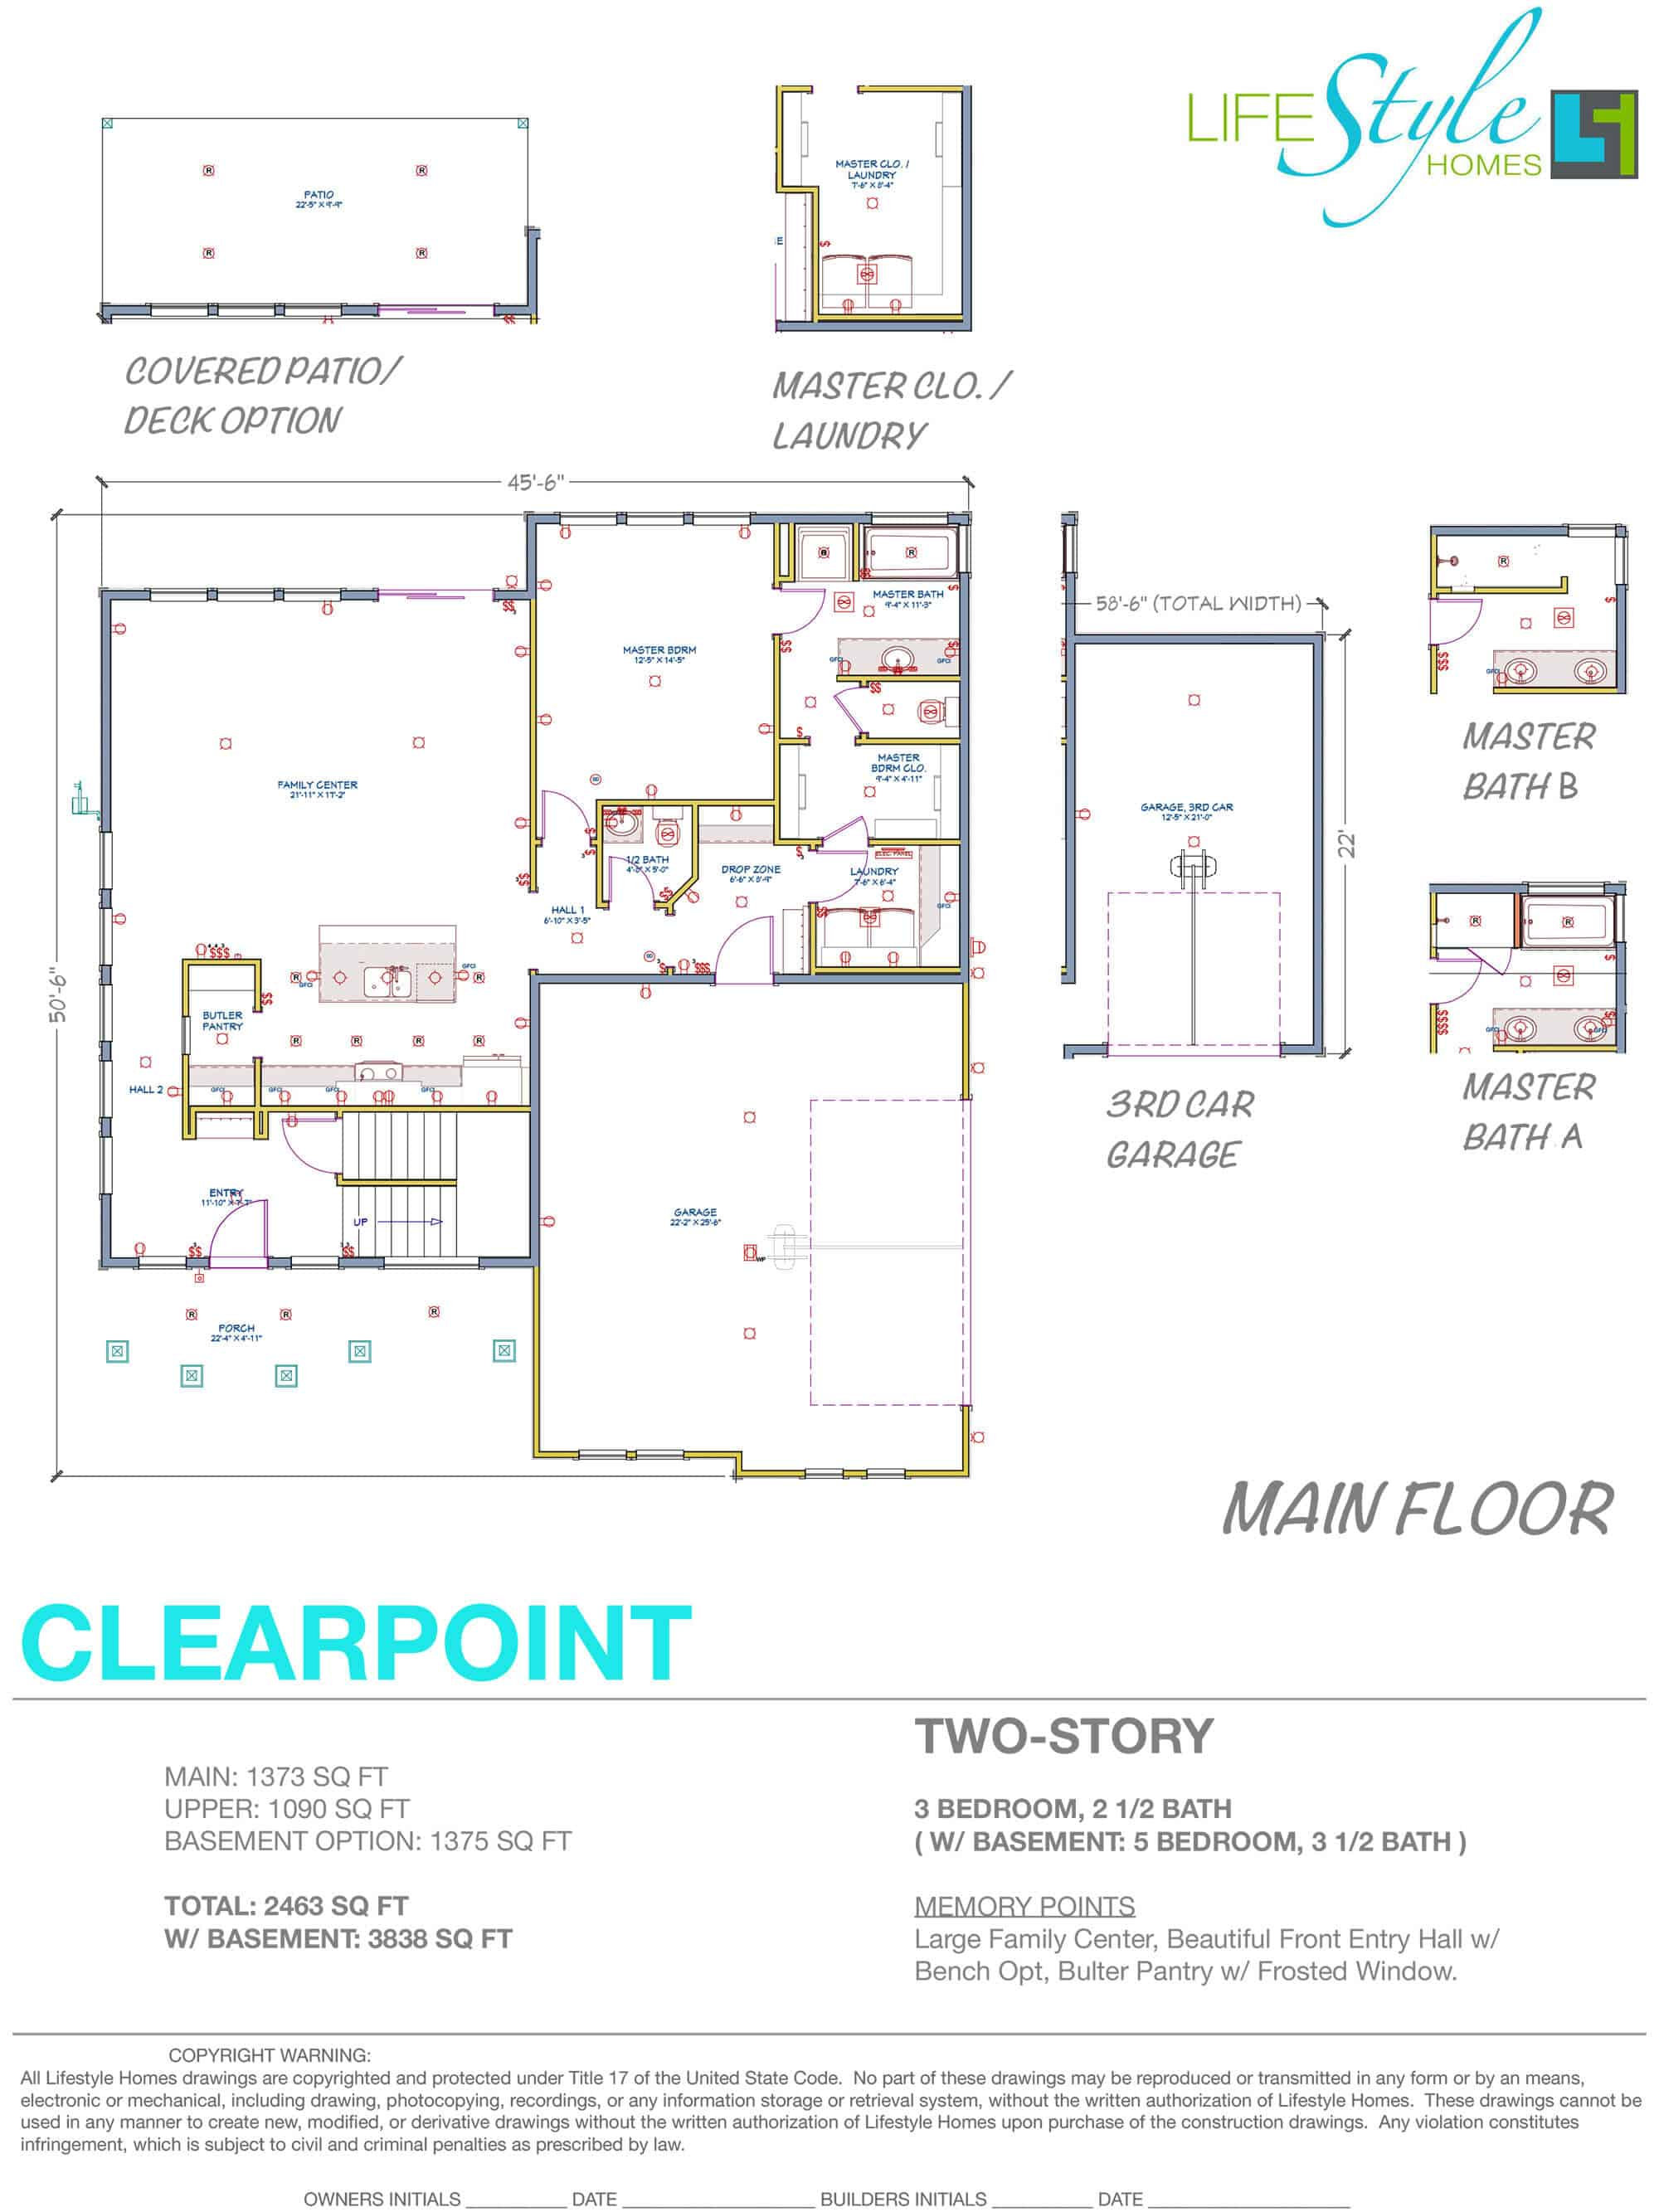 clearpoint floor plan